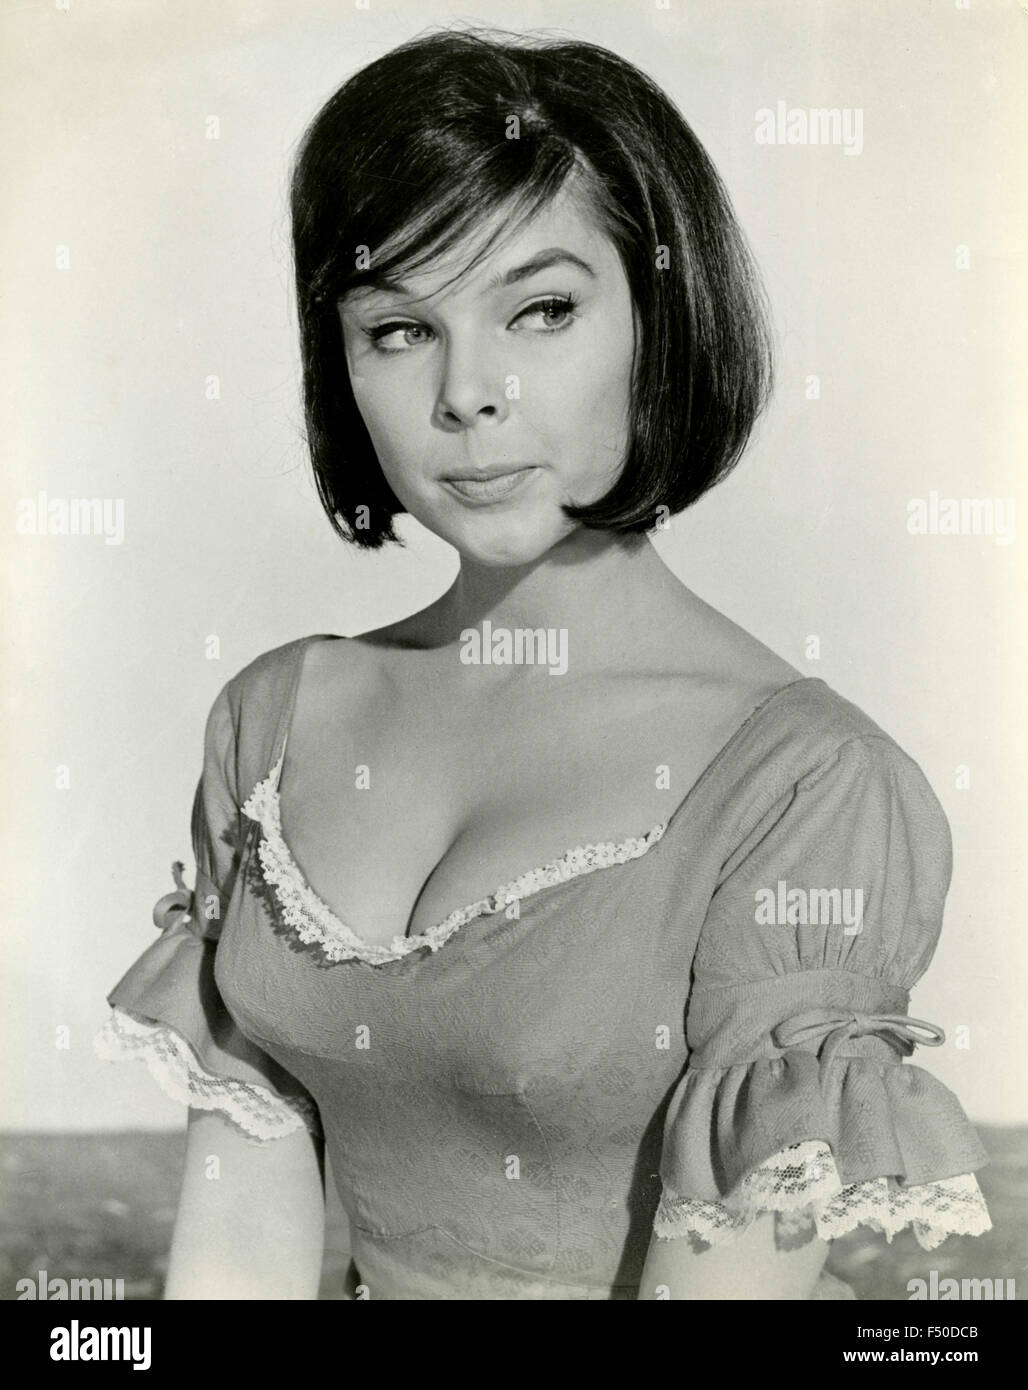 The American model and actress Yvonne Craig - Stock Image